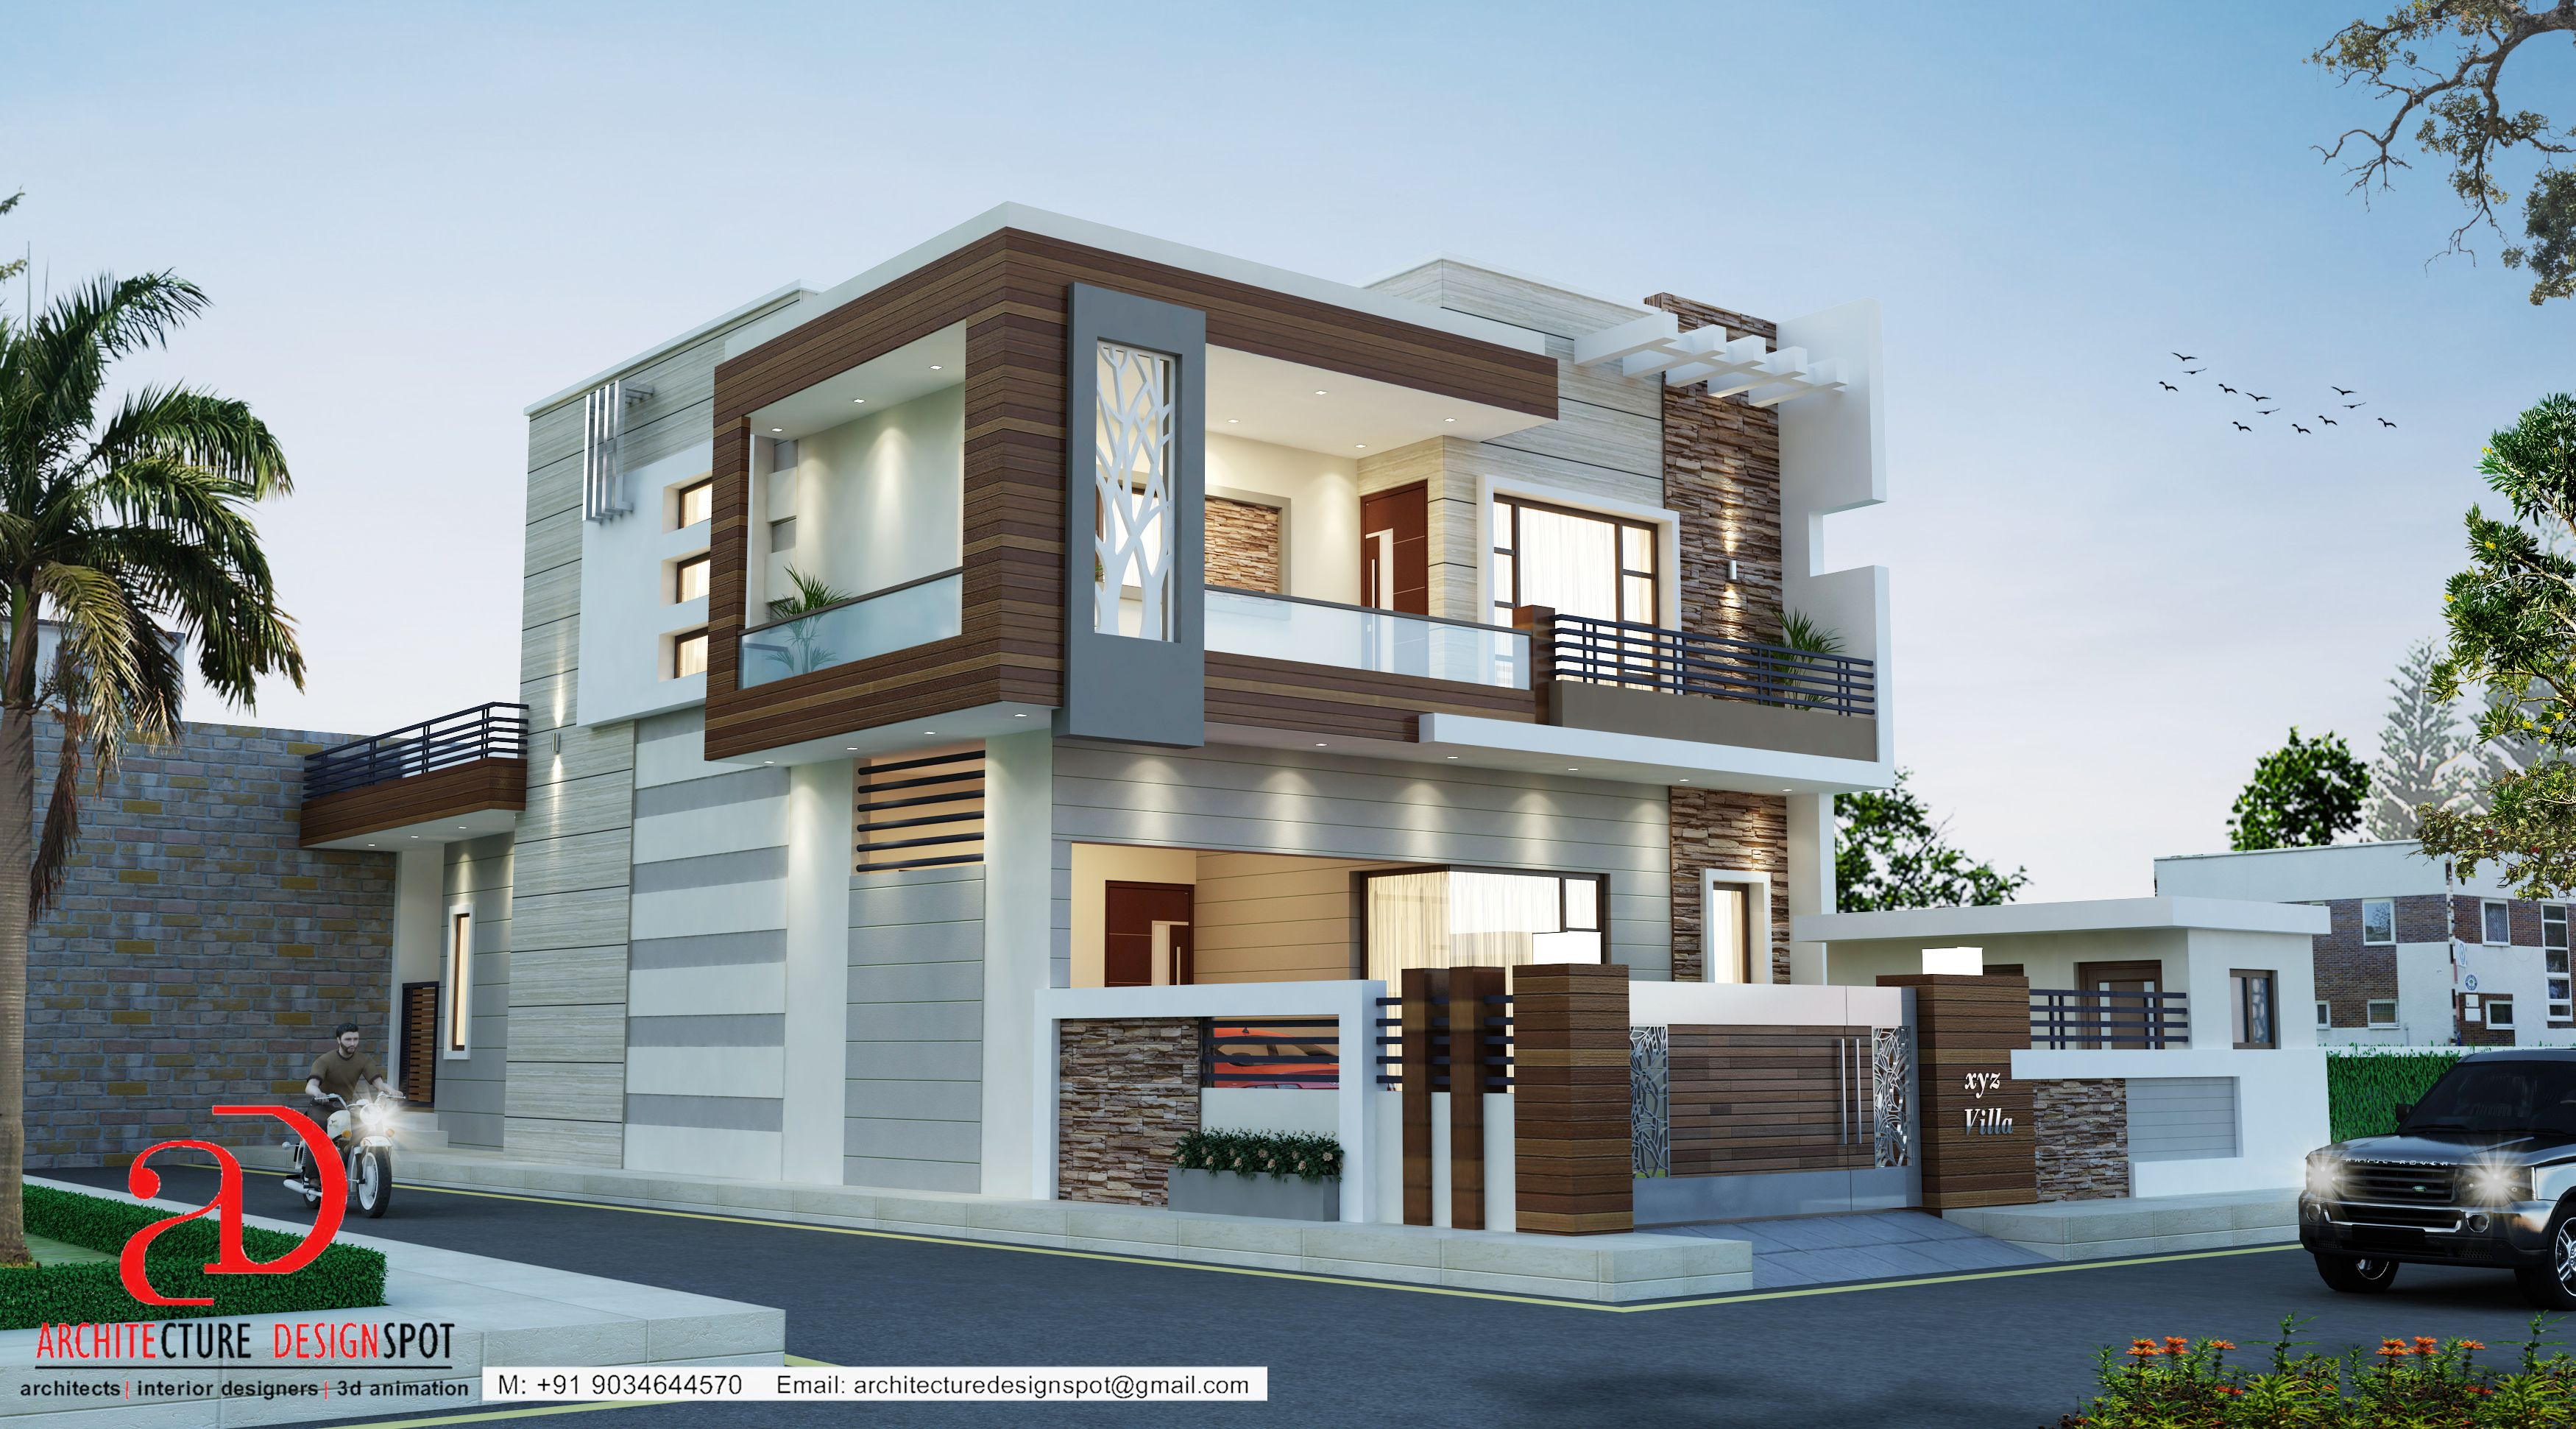 3d View Of A Modern House Architecture Design Spot Architect House House Front Design Duplex House Design